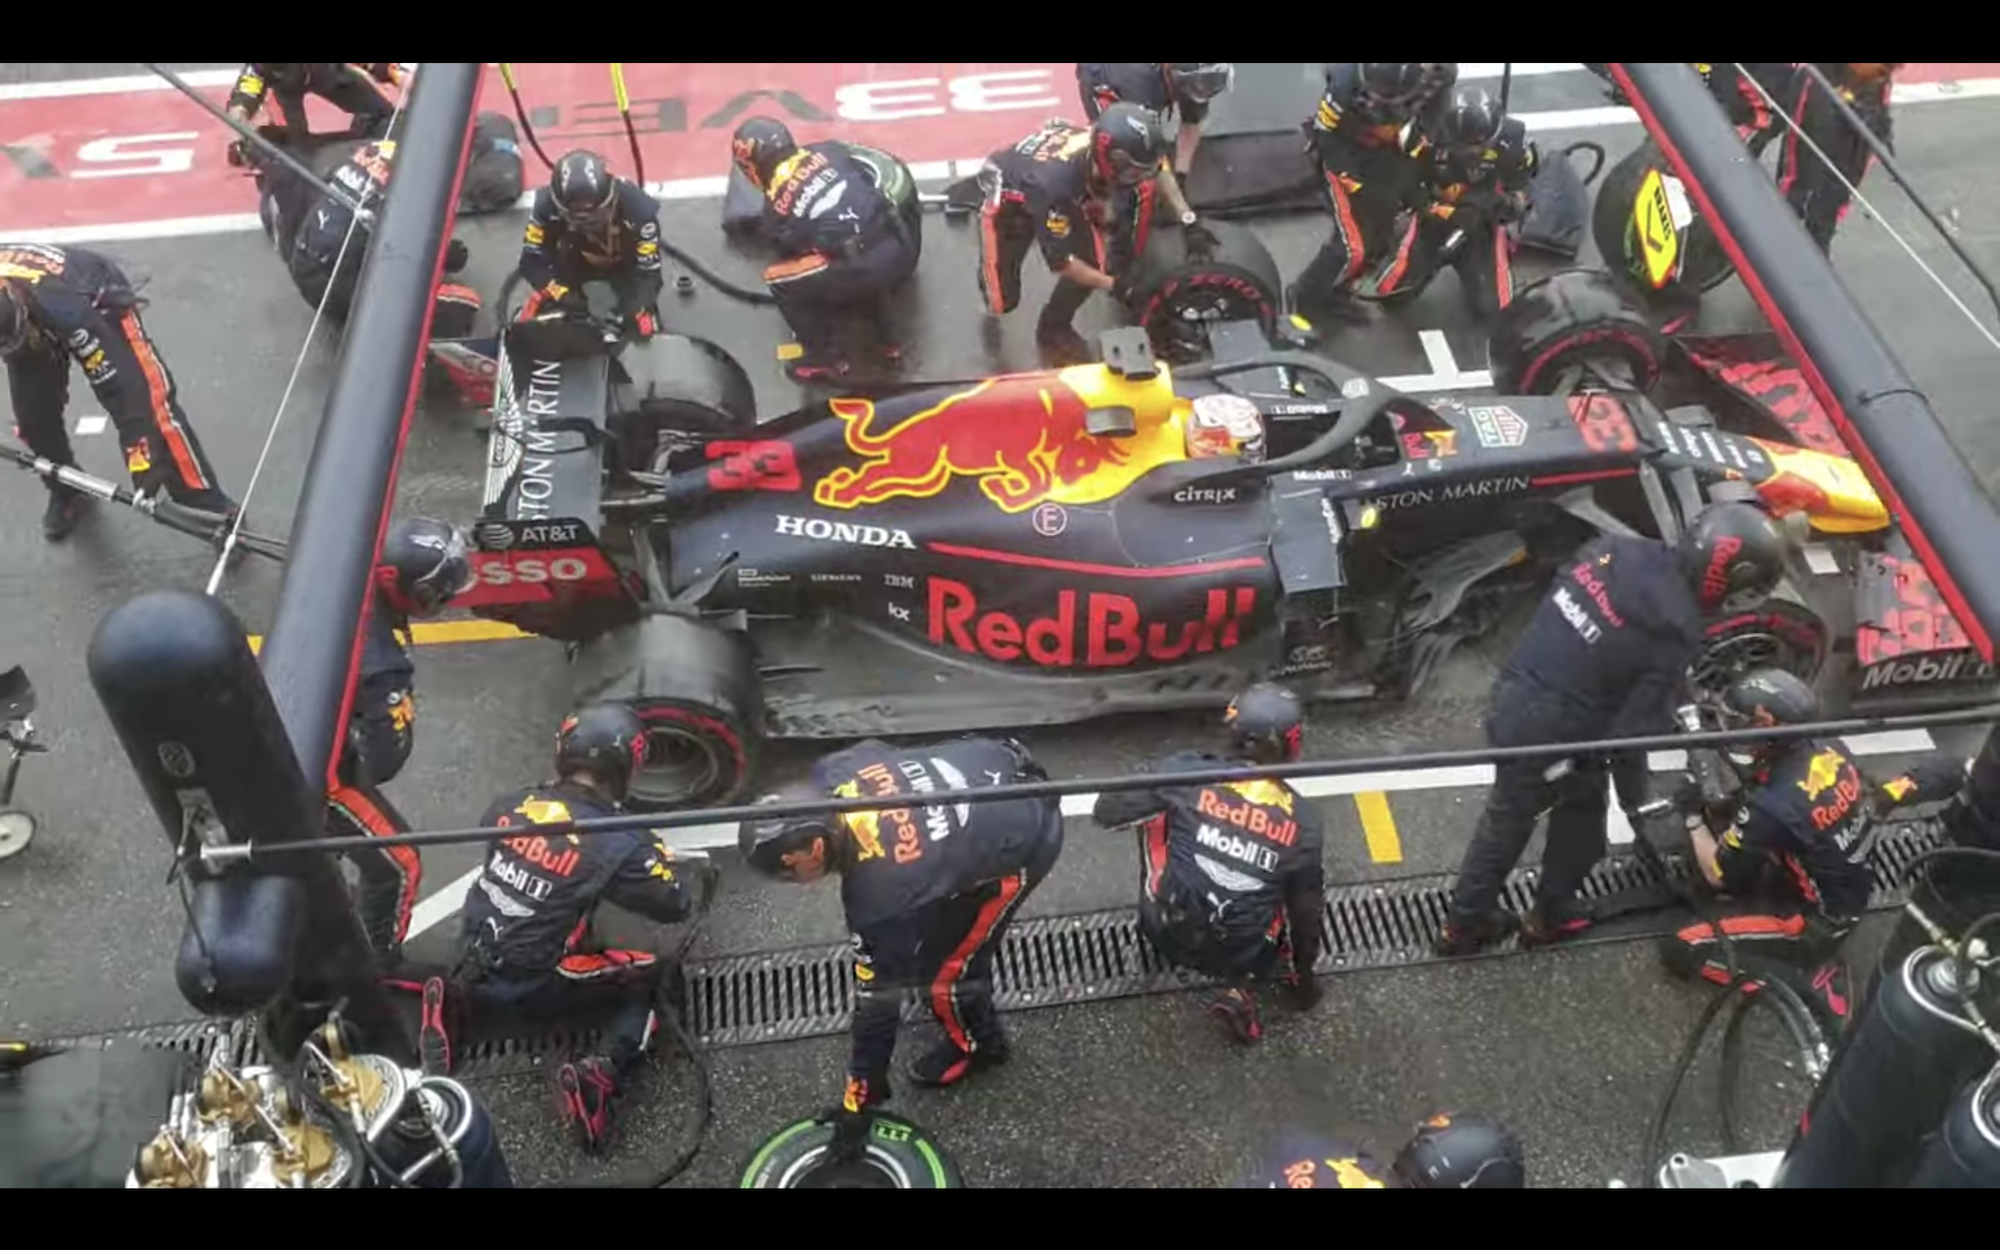 Witness the World's Fastest Pit Stop (in 1.82 Seconds)